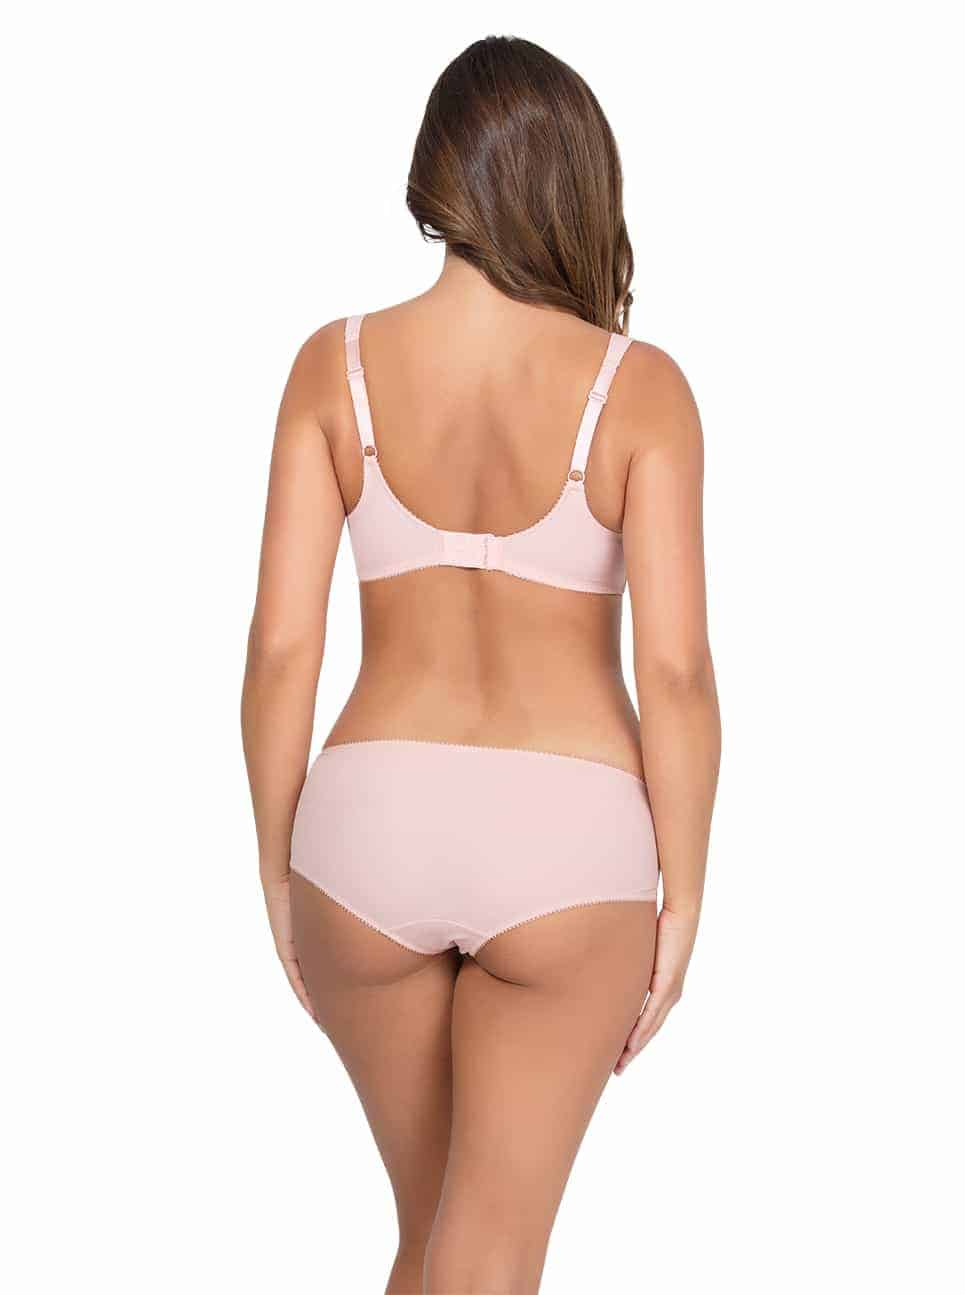 Marion UnlinedWireBraP5392 HipsterP5395 PinkParfait Back copy - Marion Hipster – Pink Parfait – P5395